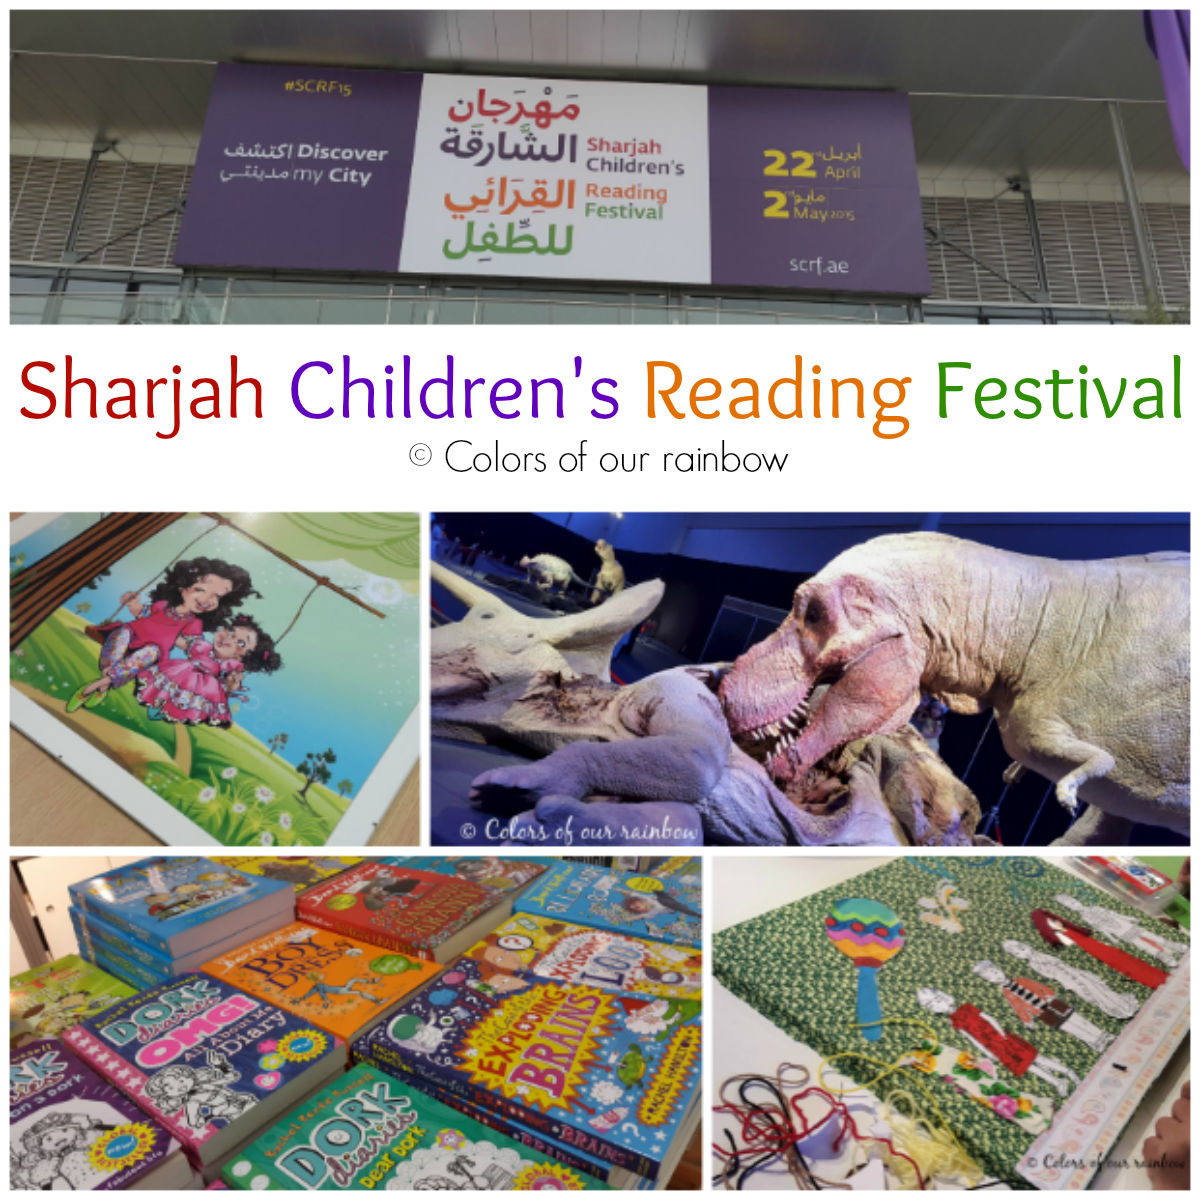 Sharjah Children's Reading Festival @colorsofourrainbow.blogspot.ae